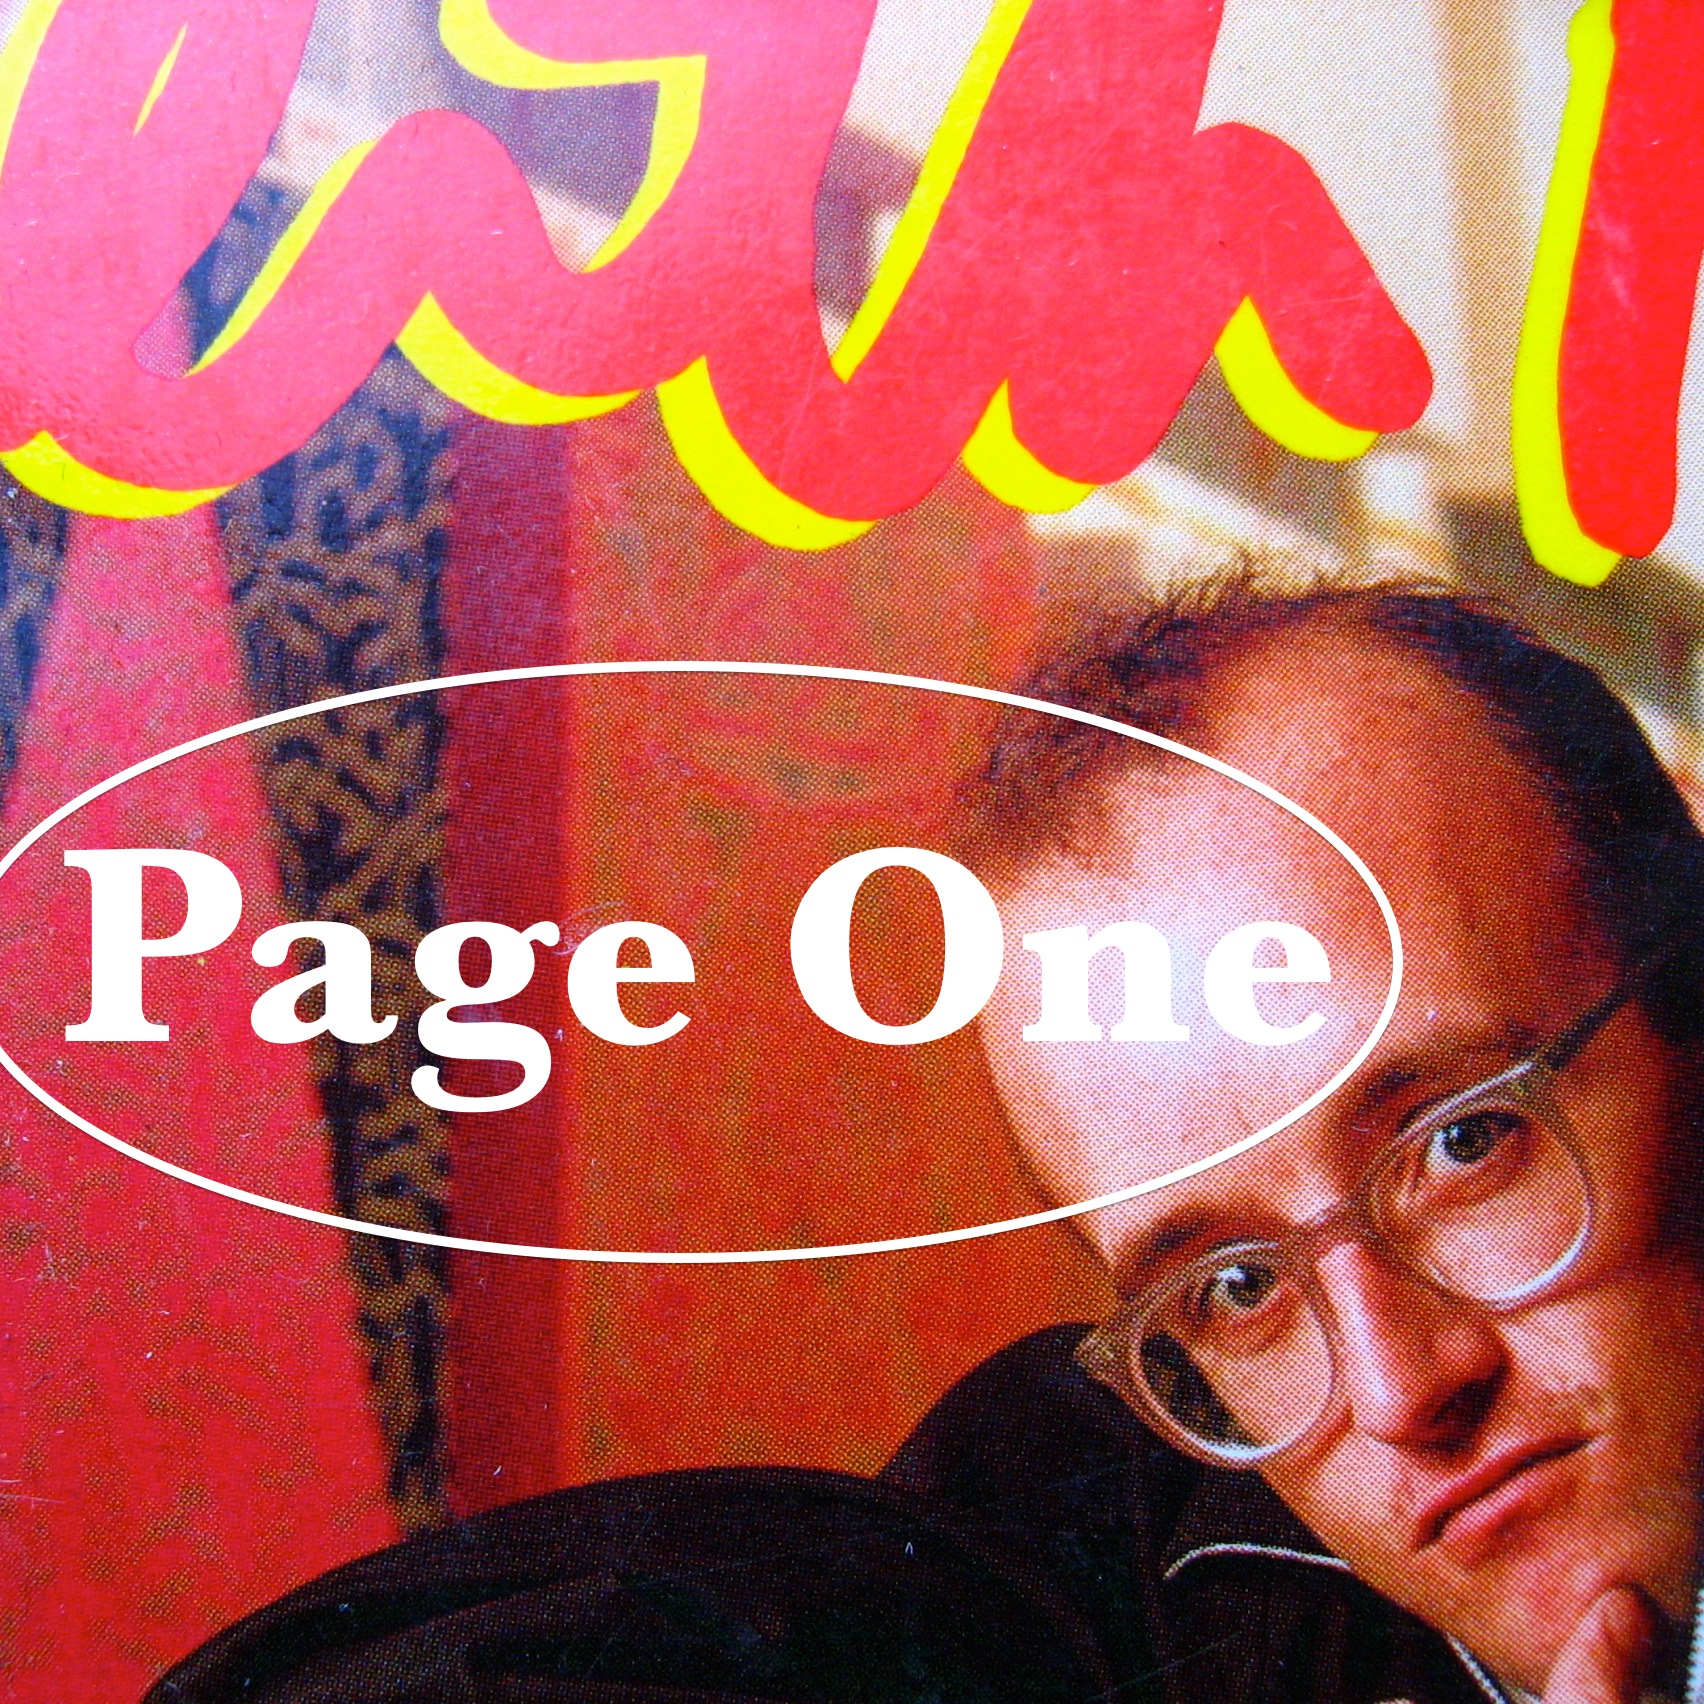 Episode image is a detail from the cover of  Keith Haring, The Authorised Biography  by John Gruen, published in 1992 by Simon & Schuster; cover design by Patricia Fabricant; cover photograph by William Coupon.